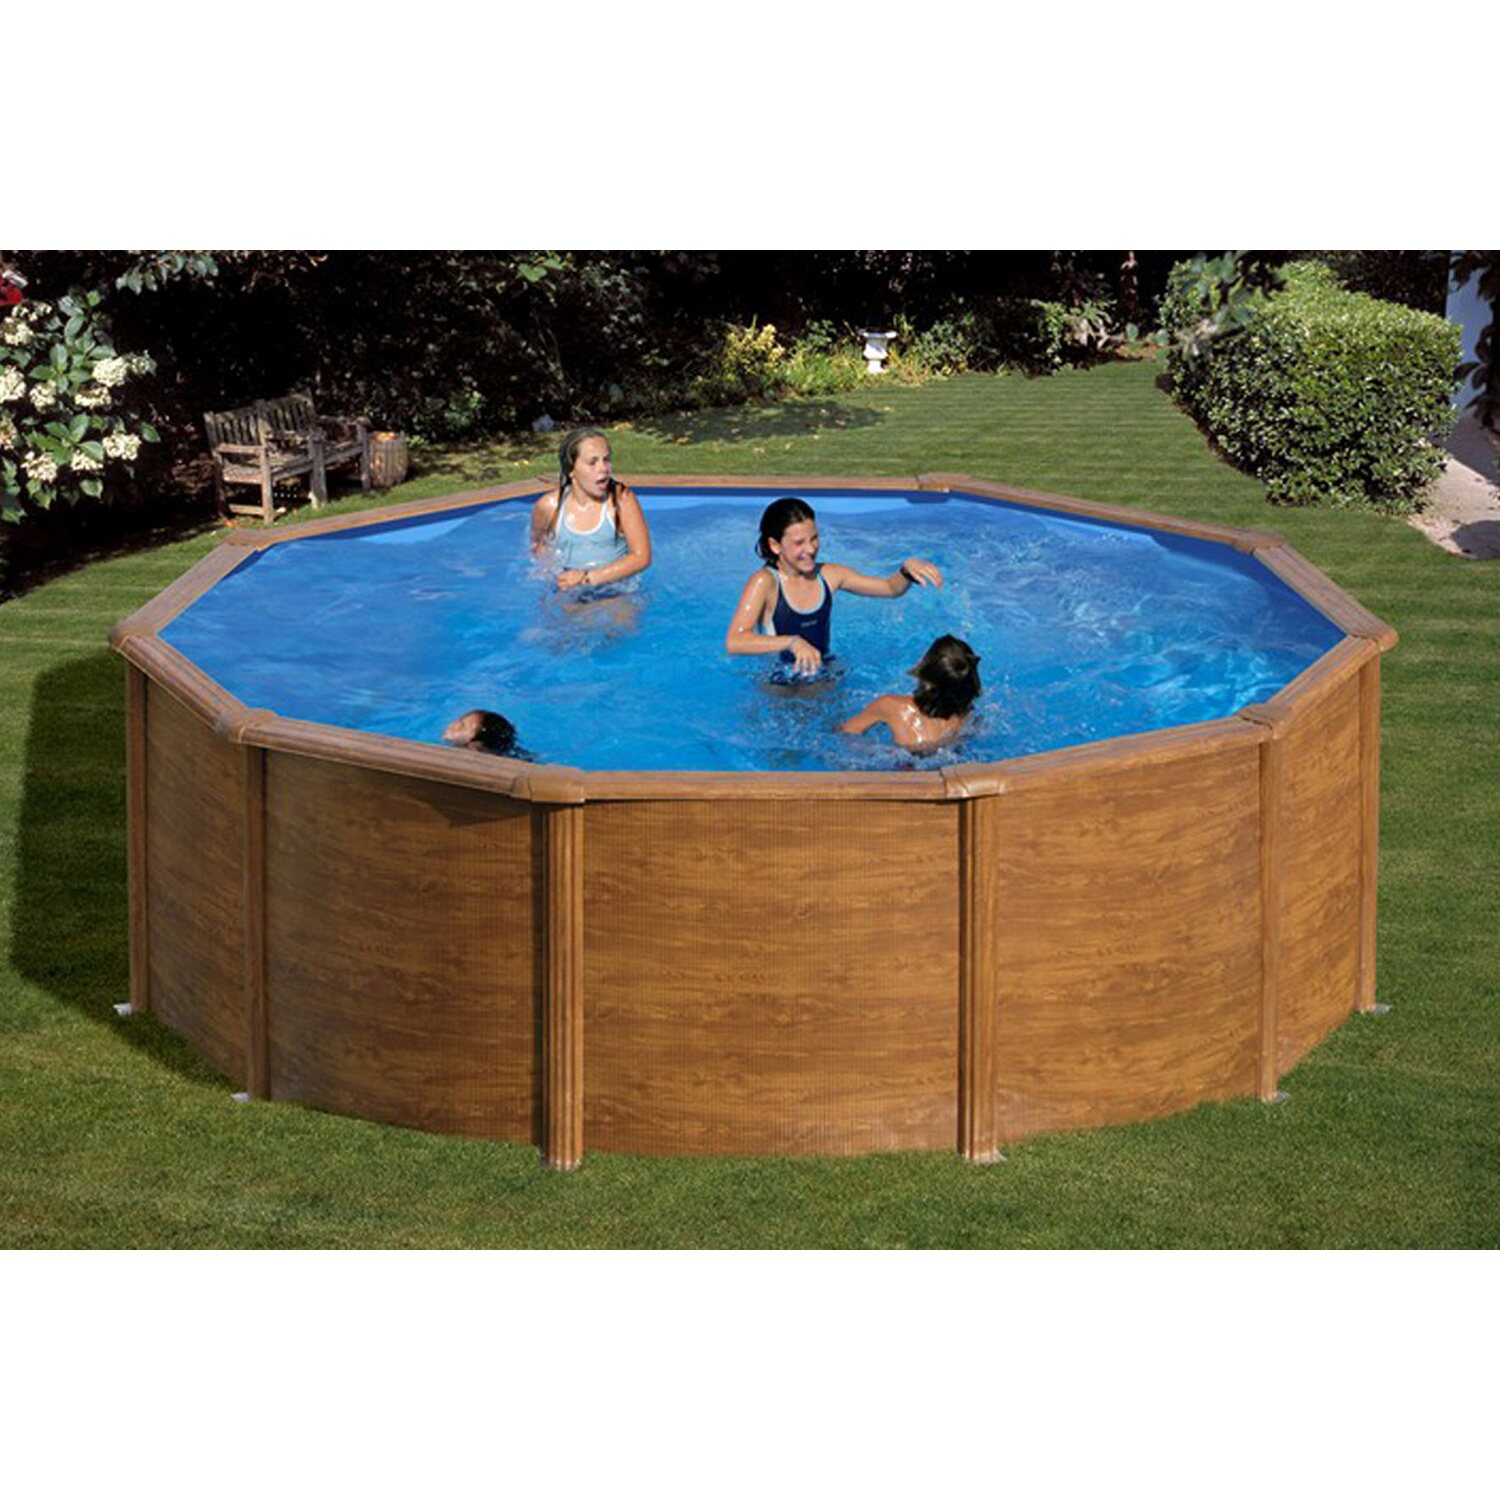 Summer fun stahlwand pool set holz dekor rhodos for Obi pool set